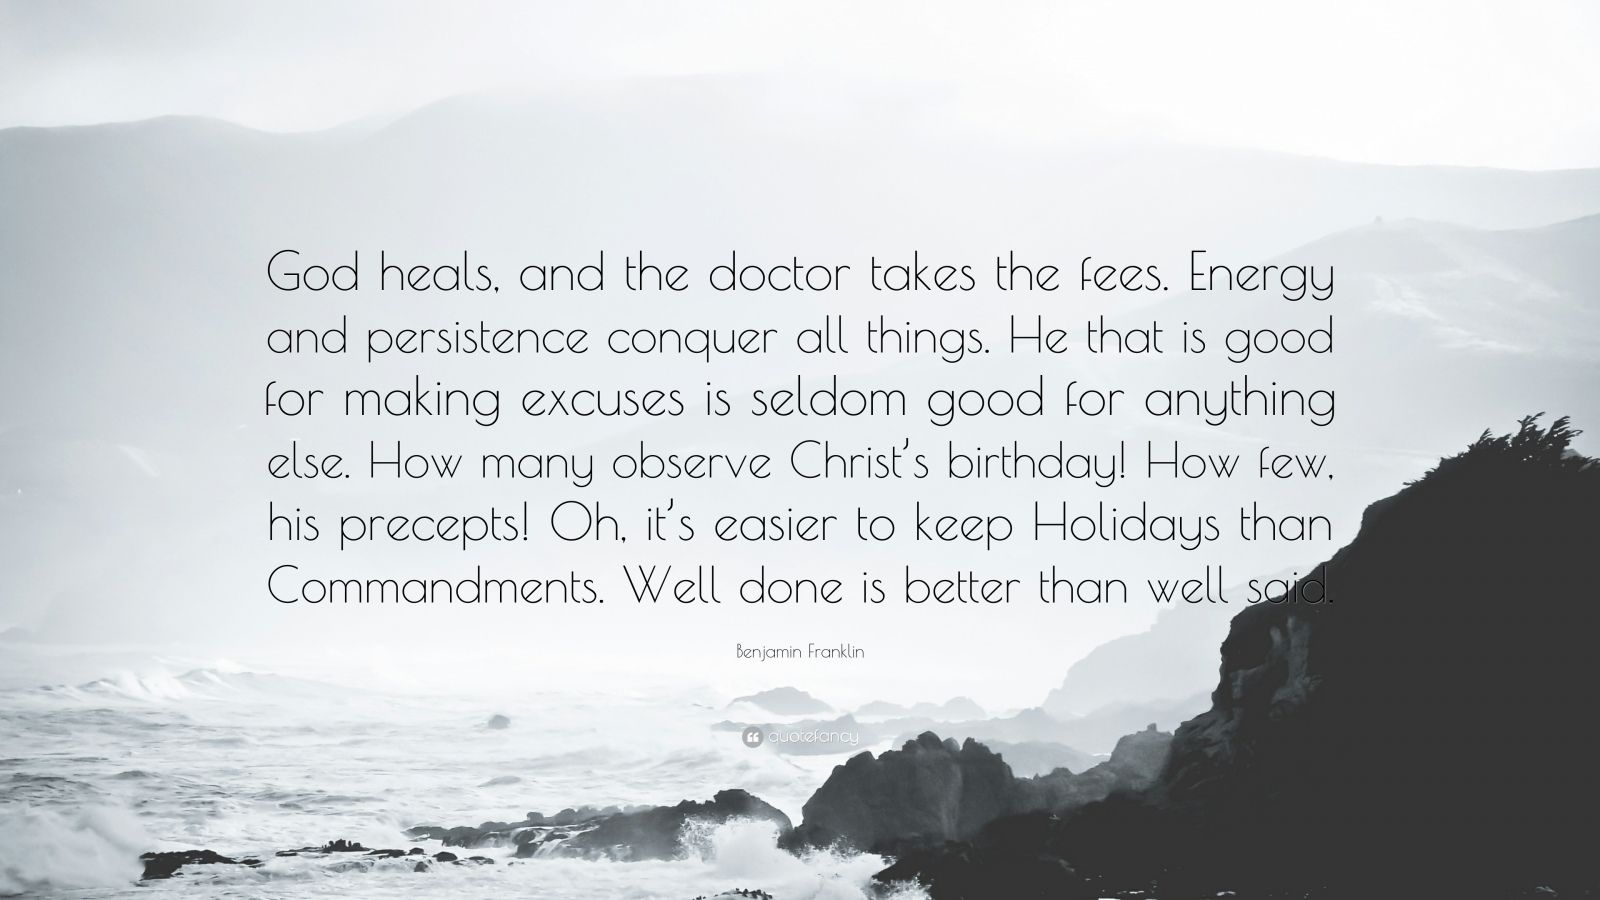 """Benjamin Franklin Quote: """"God heals, and the doctor takes the fees. Energy and persistence conquer all things. He that is good for making excuses is seldom good for anything else. How many observe Christ's birthday! How few, his precepts! Oh, it's easier to keep Holidays than Commandments. Well done is better than well said."""""""